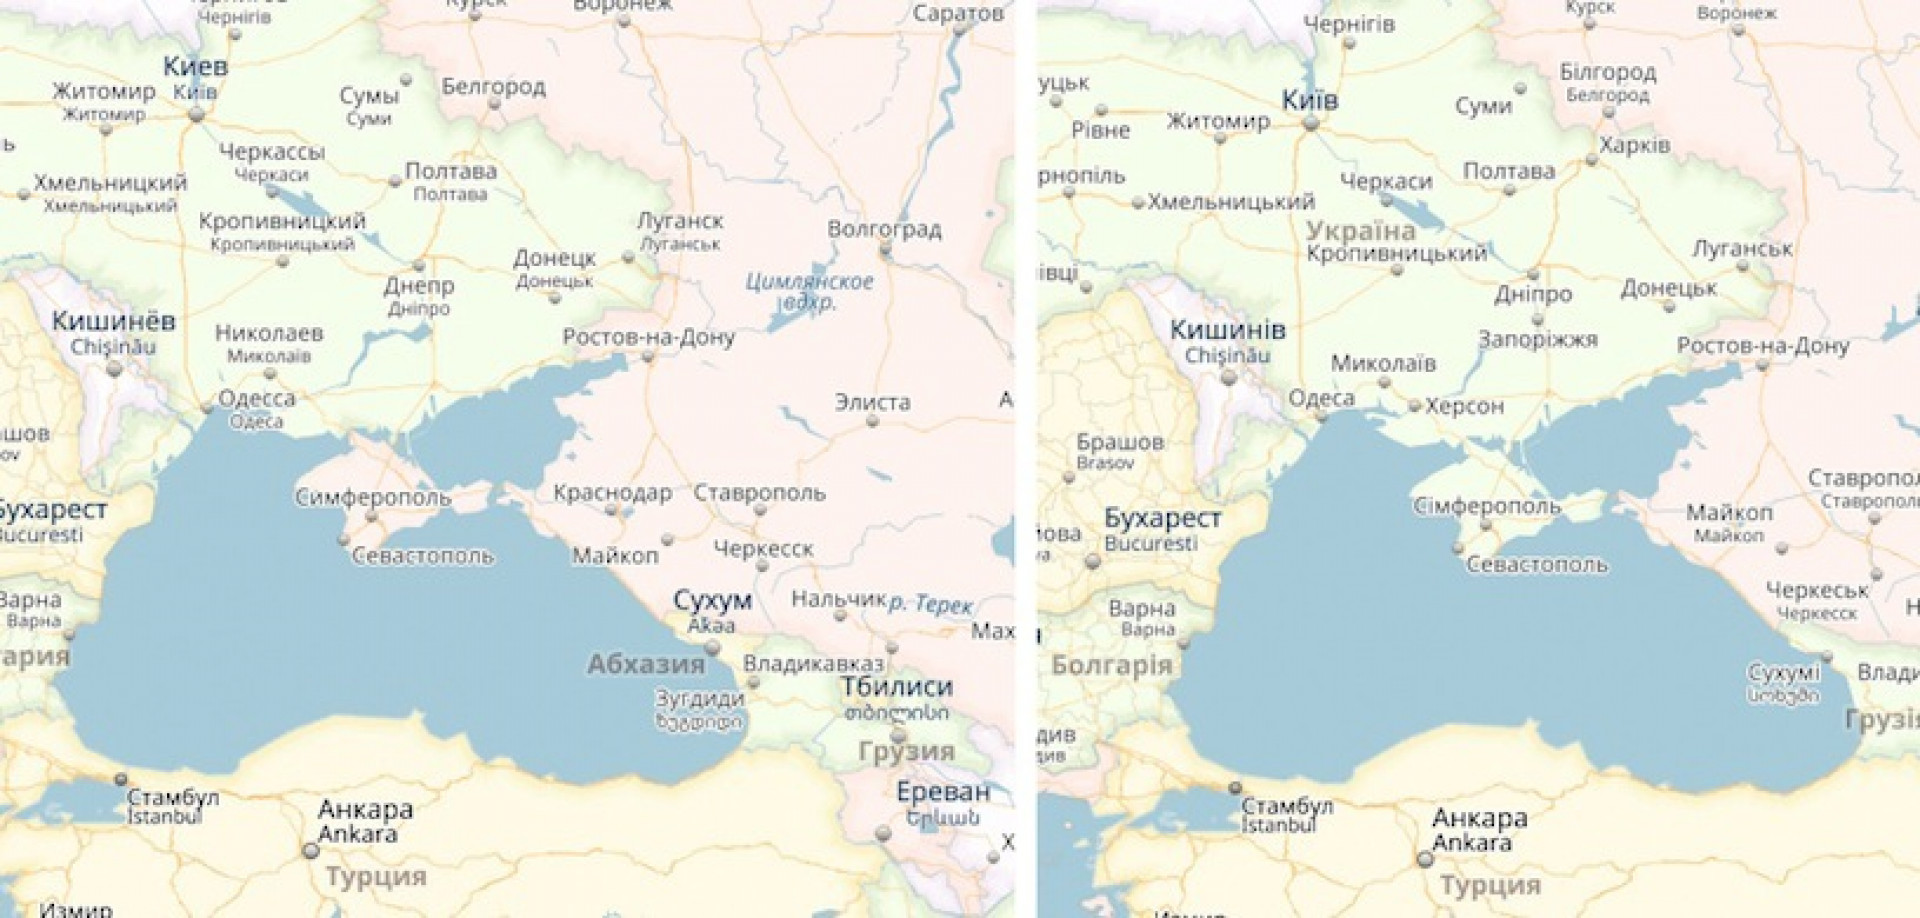 Crimean Map Scandals Choice Between Offending Russia Or Ukraine